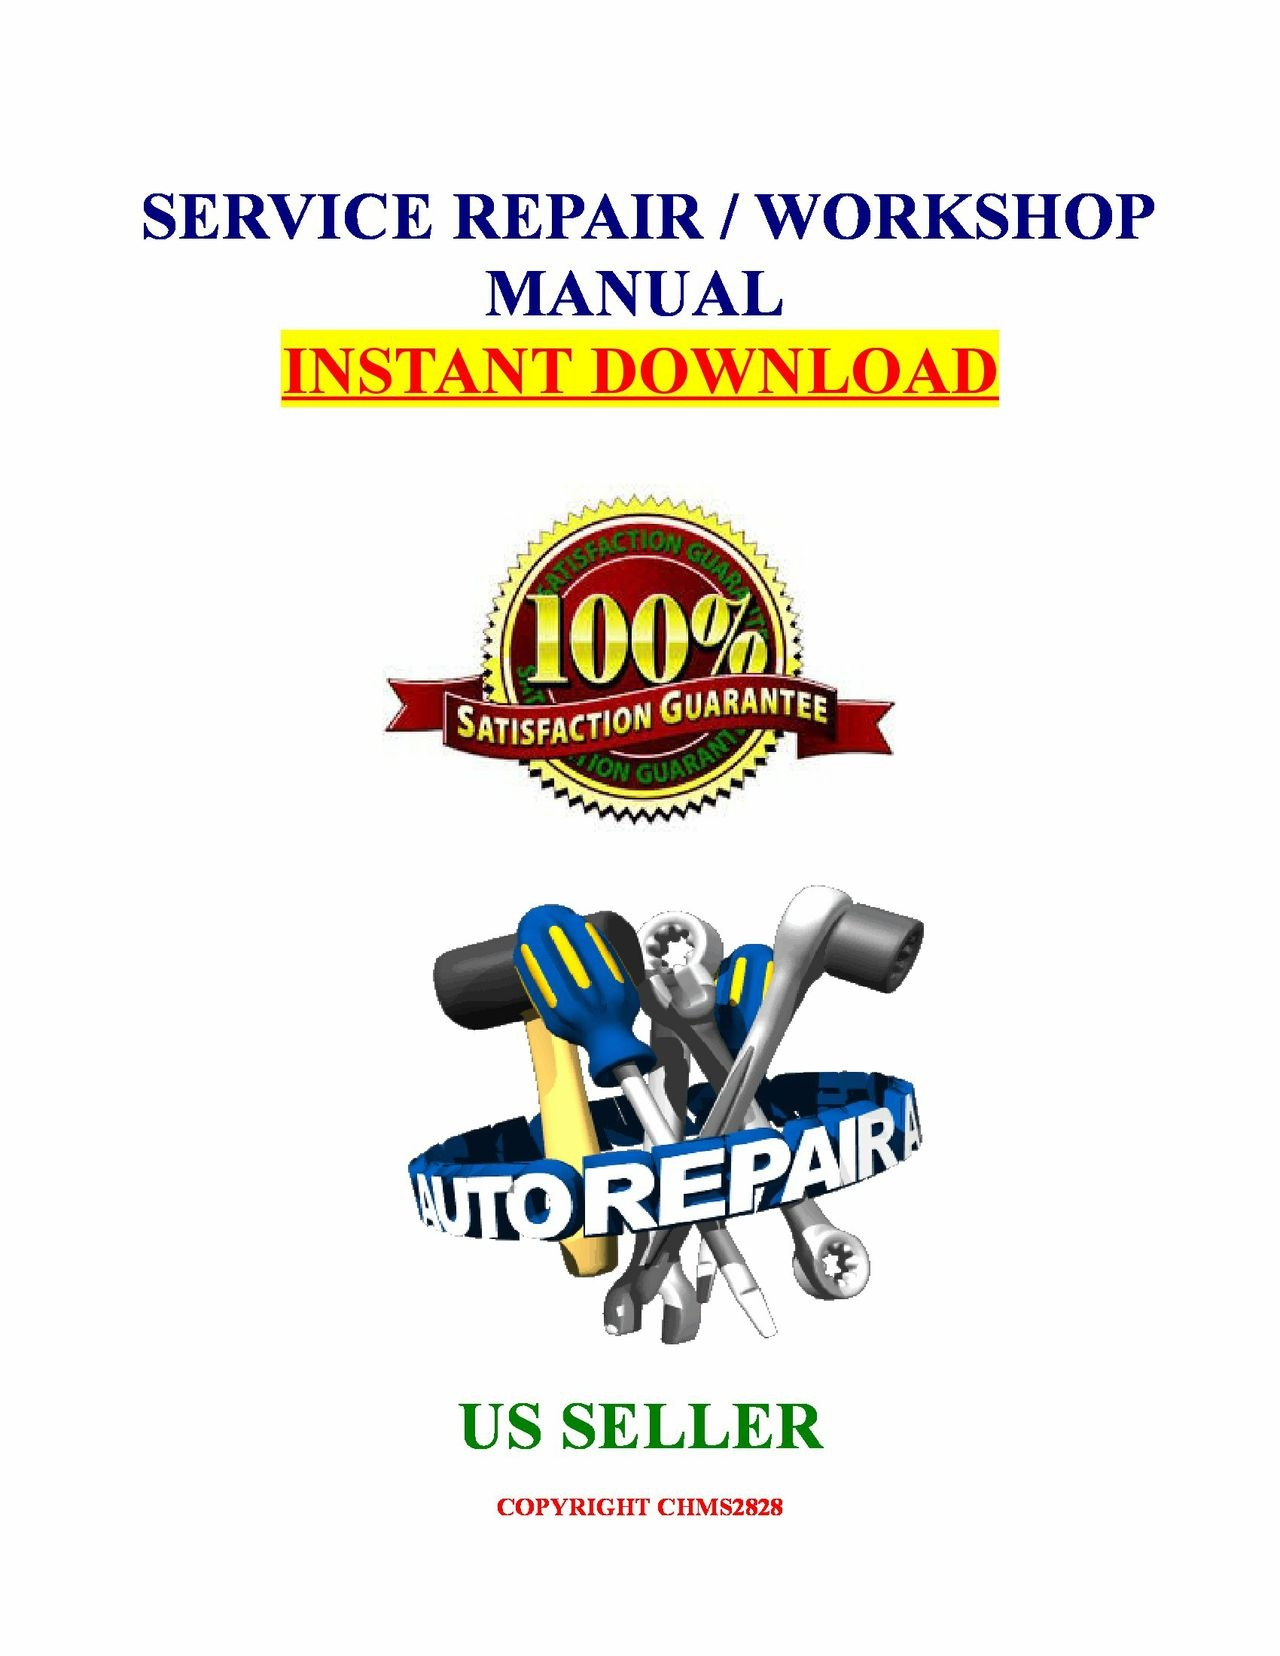 2005 rmz 250 repair manual suzuki rm250 service repair manual instant download rm 250 array jim u0027s manuals page 2 sellfy com rh sellfy com fandeluxe Images